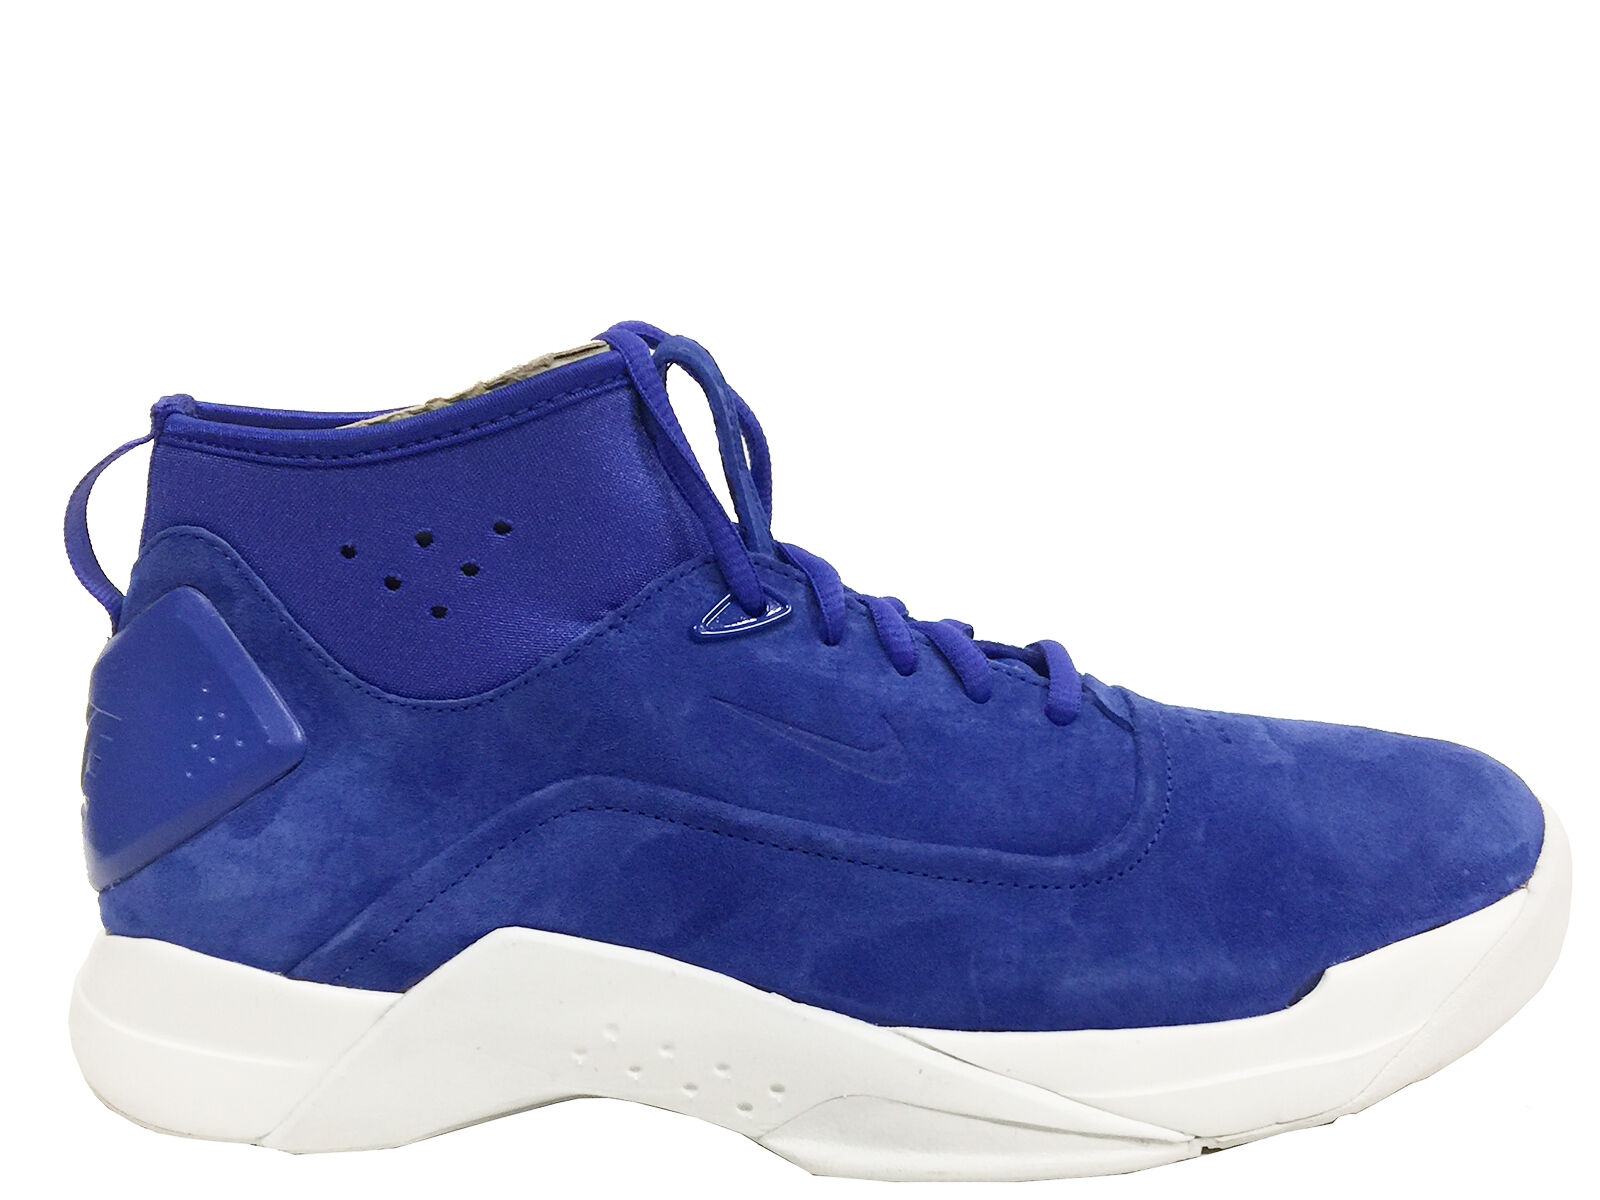 Brand New Nike Hyperdunk Low Lux Men's Athletic Fashion Sneakers [864022 400]